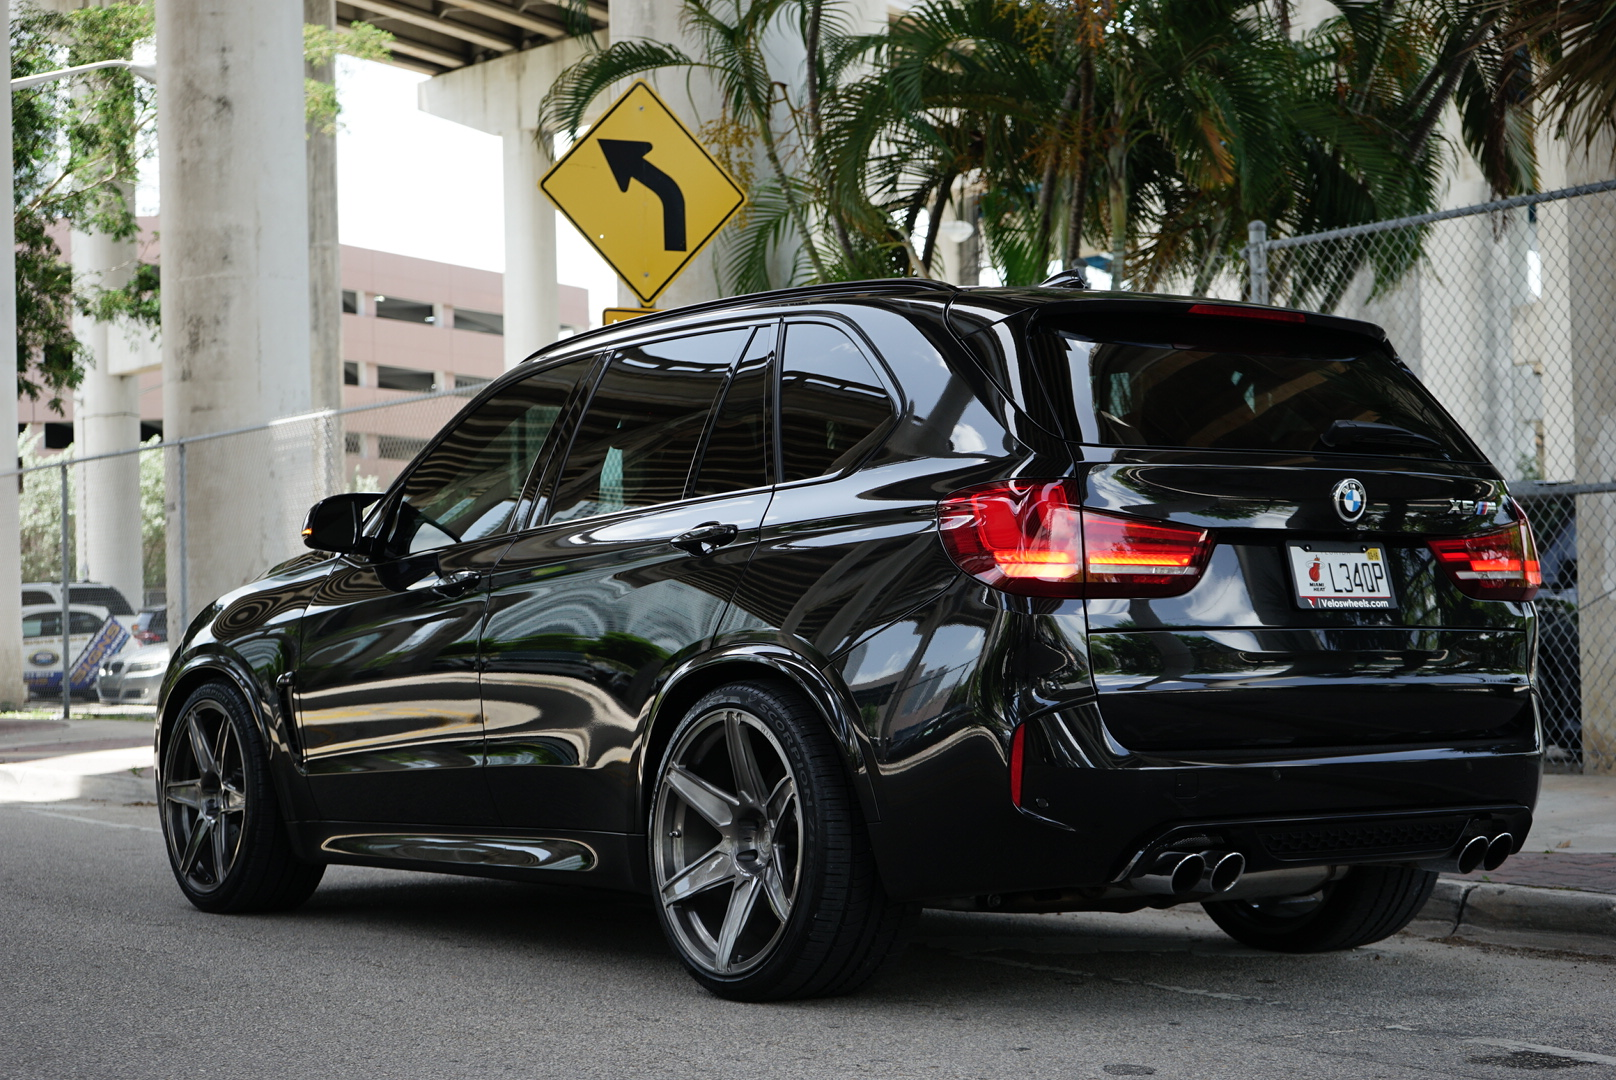 X5m Archives Velos Designwerks Performance Tuning